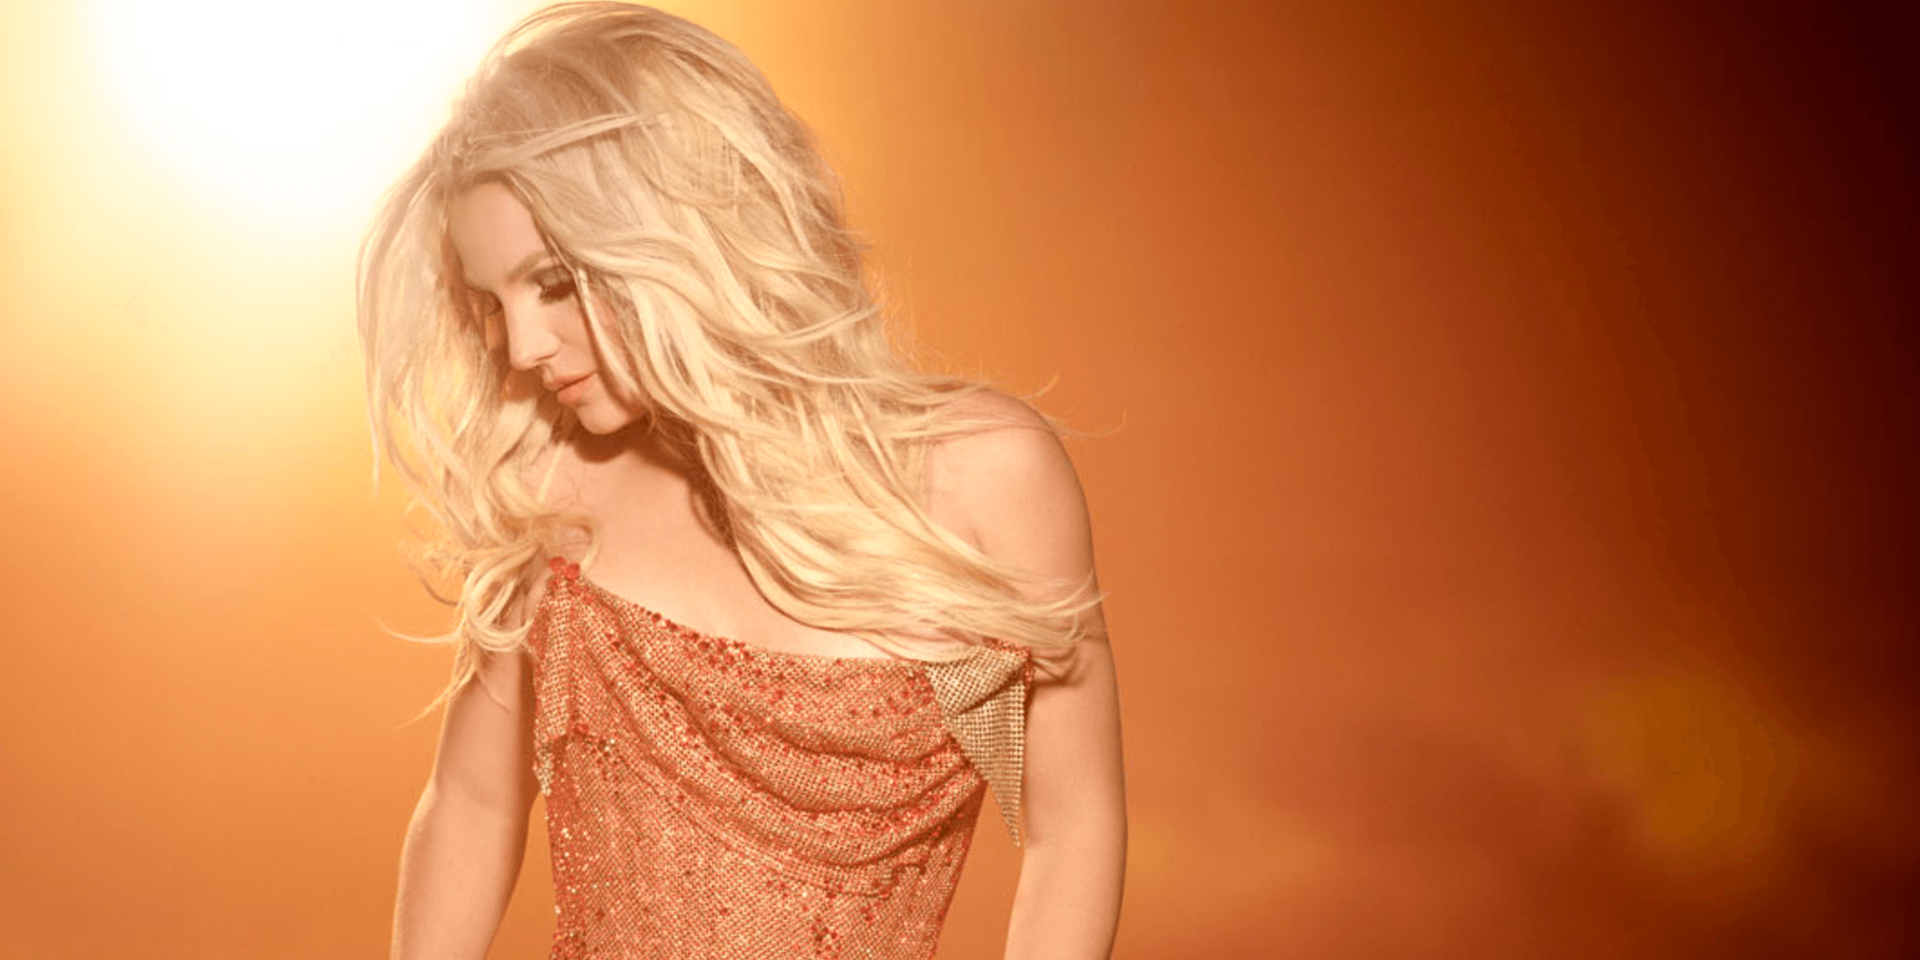 Filipino musicians tell us why Britney is their Queen